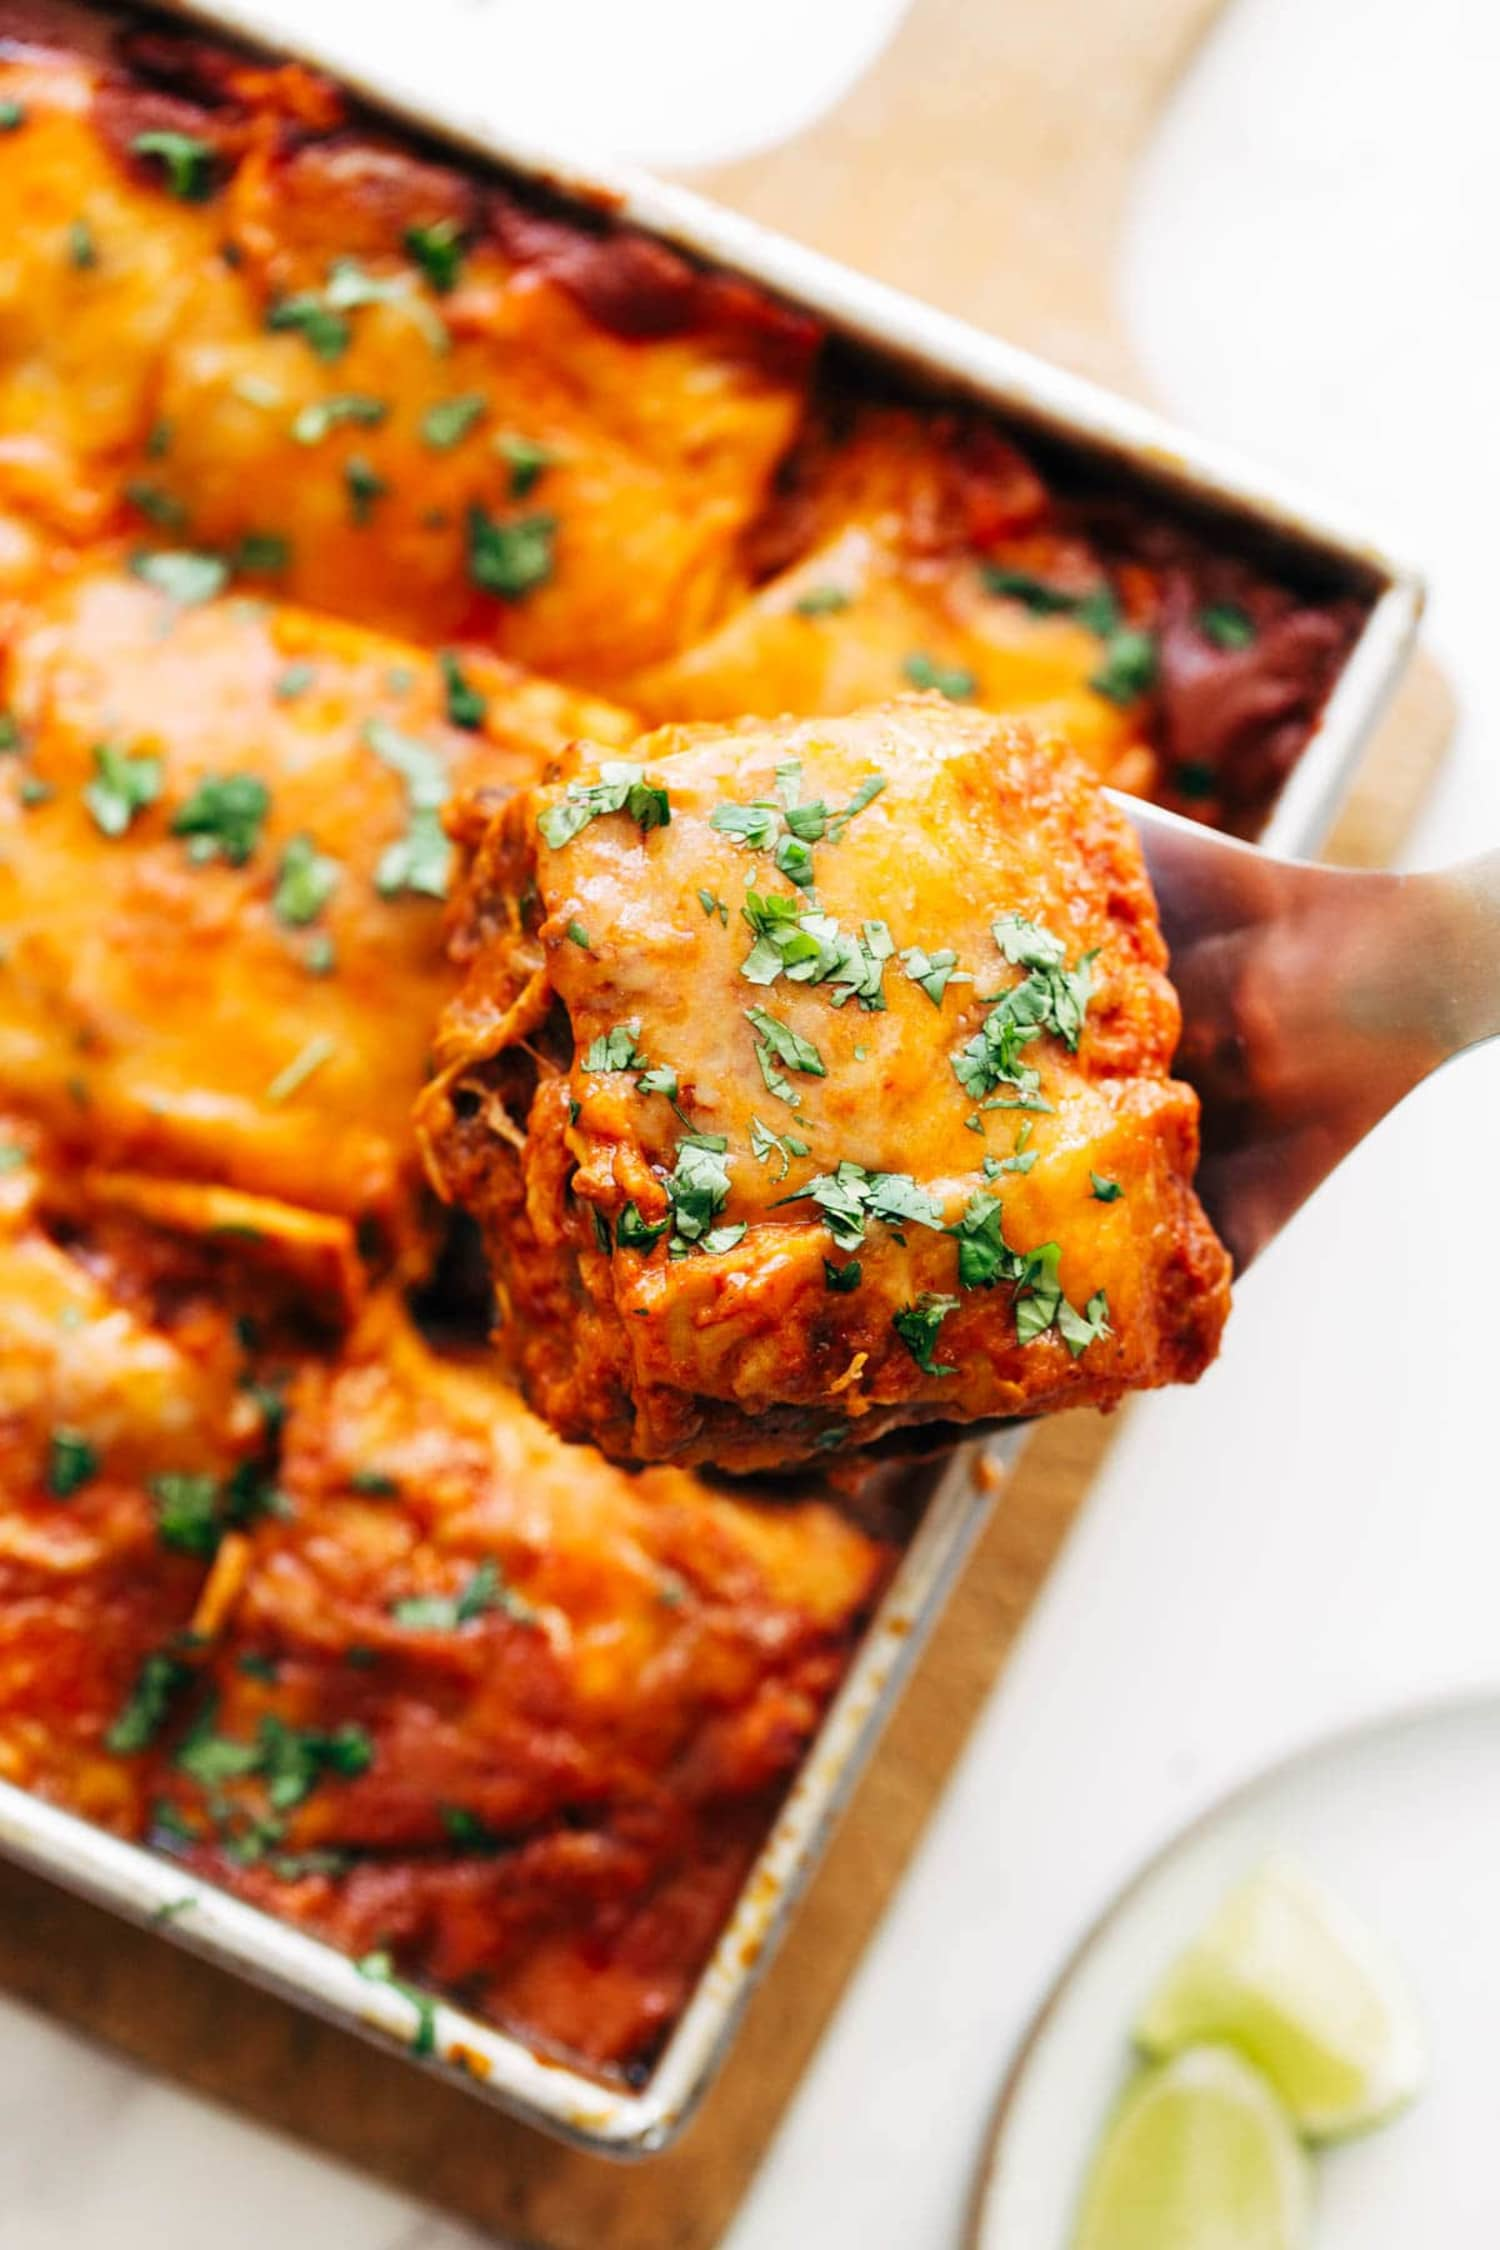 5-Ingredient Chicken Enchilada Casserole Tastes Like It Took All Day to Make